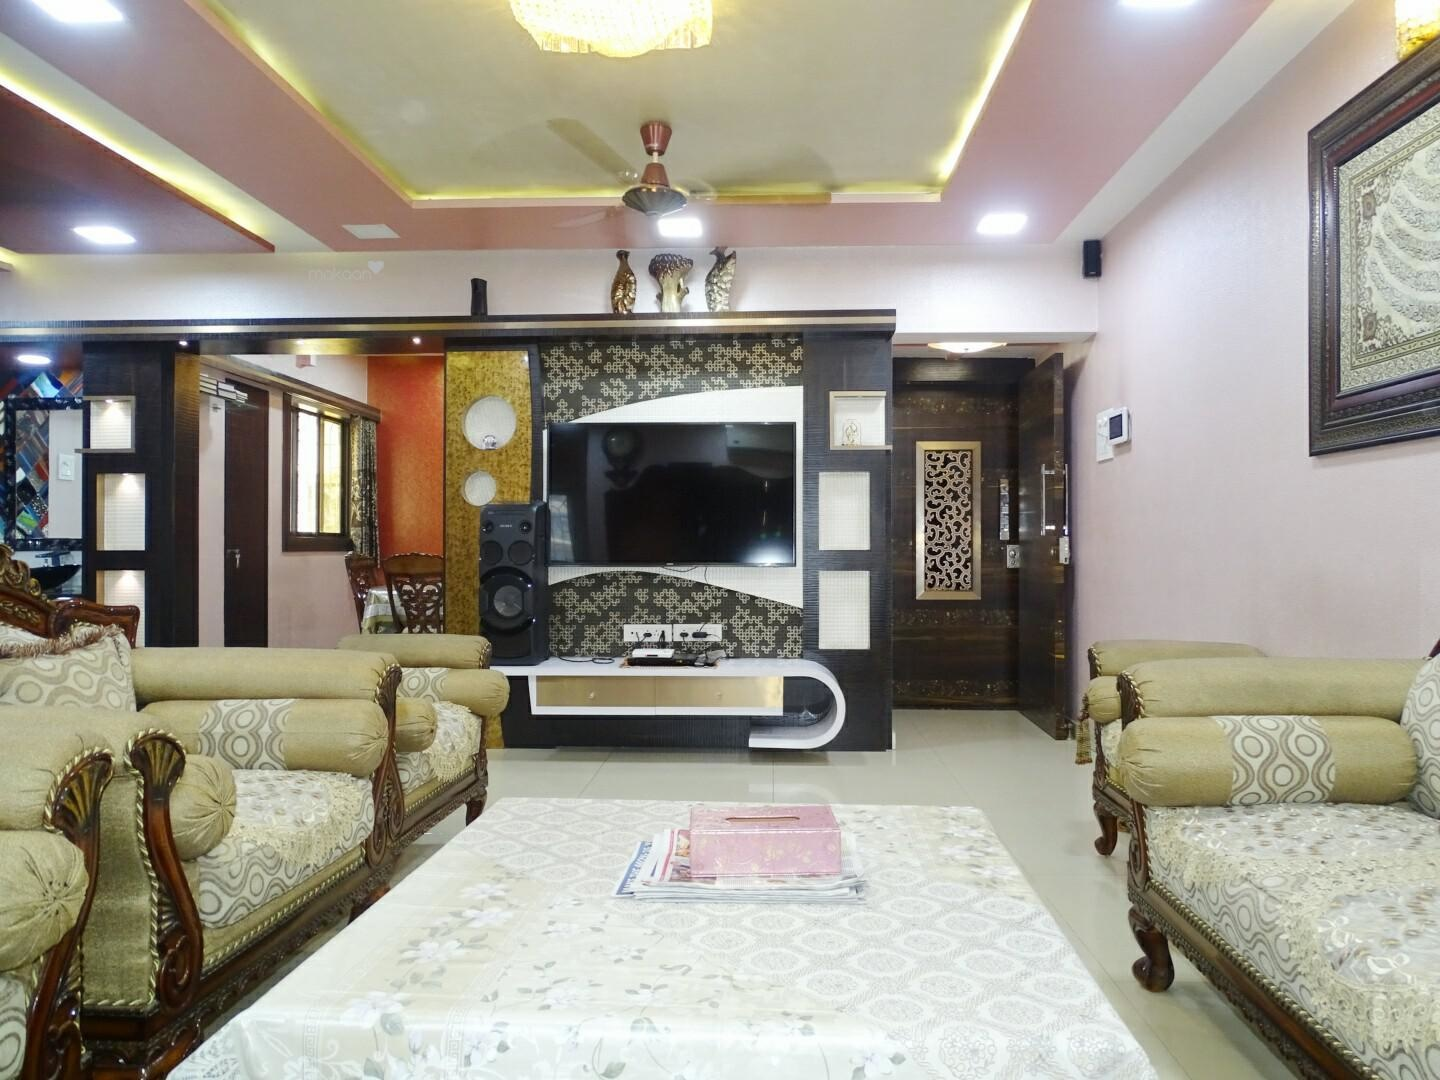 a1 sofa cleaning navi mumbai maharashtra replacement leather cushion covers property for rent in rental properties 2000 sqft 5 bhk apartment builder project sector 21 at rs